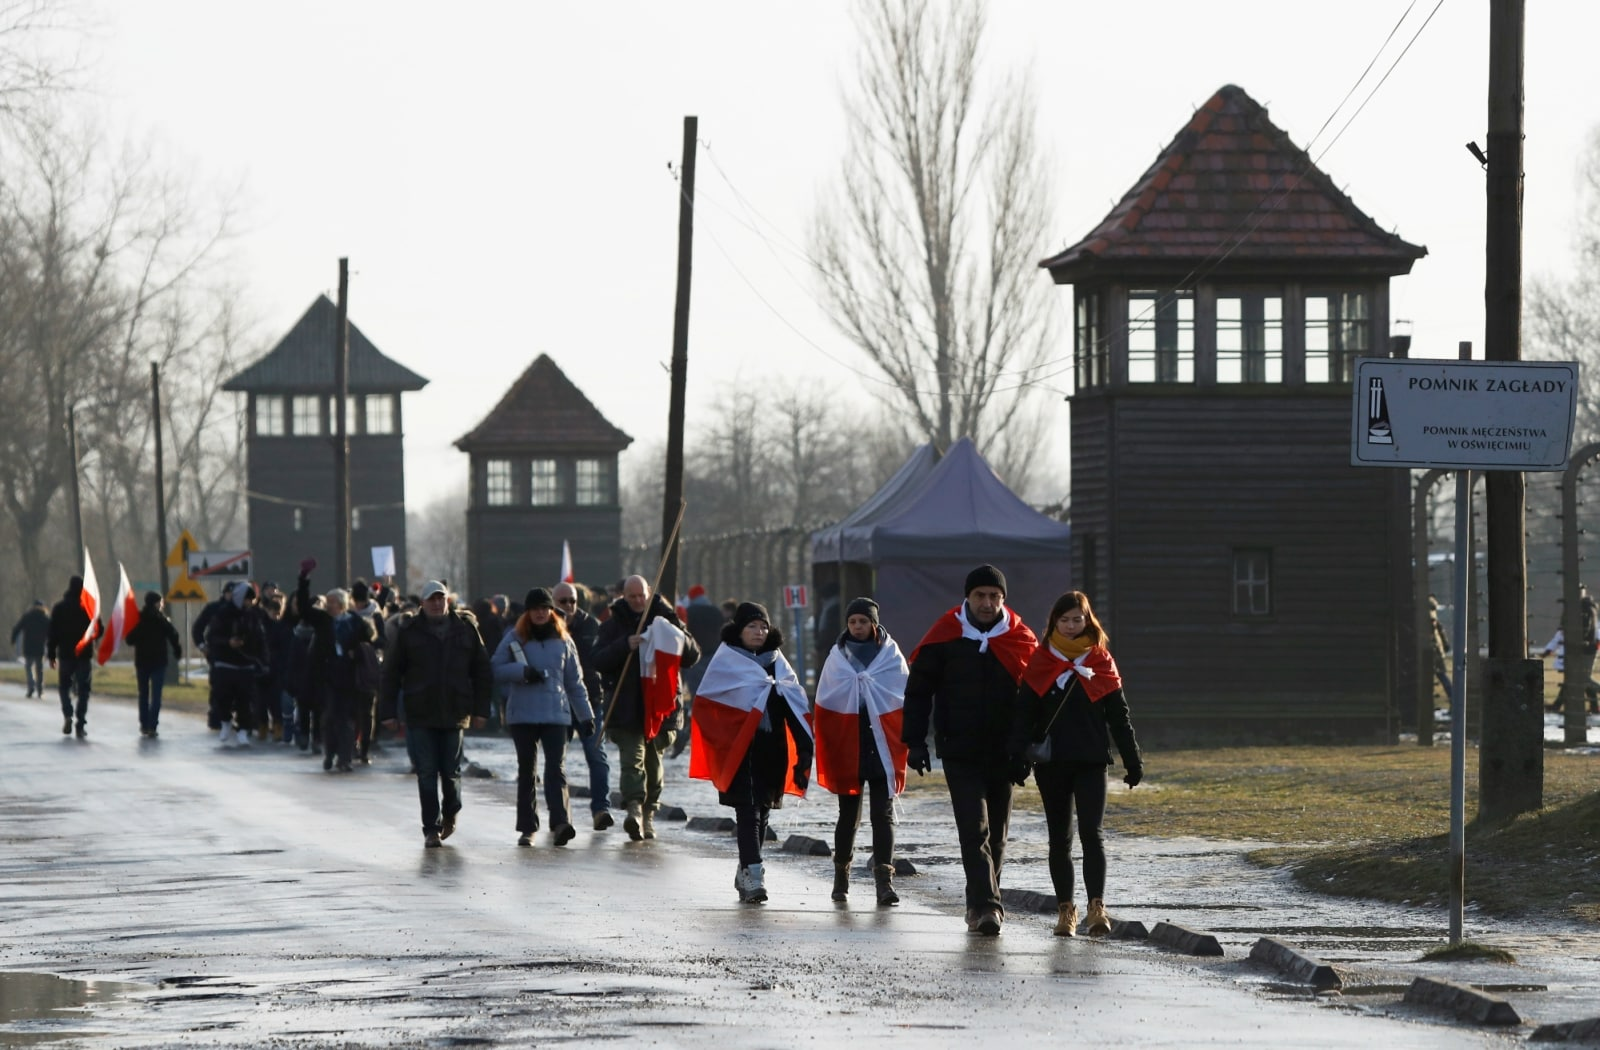 People walk along the fence of the former Nazi German concentration and extermination camp Birkenau, during the ceremonies marking the 74th anniversary of the liberation of the camp and International Holocaust Victims Remembrance Day, near Oswiecim, Poland, January 27, 2019. REUTERS/Kacper Pempel